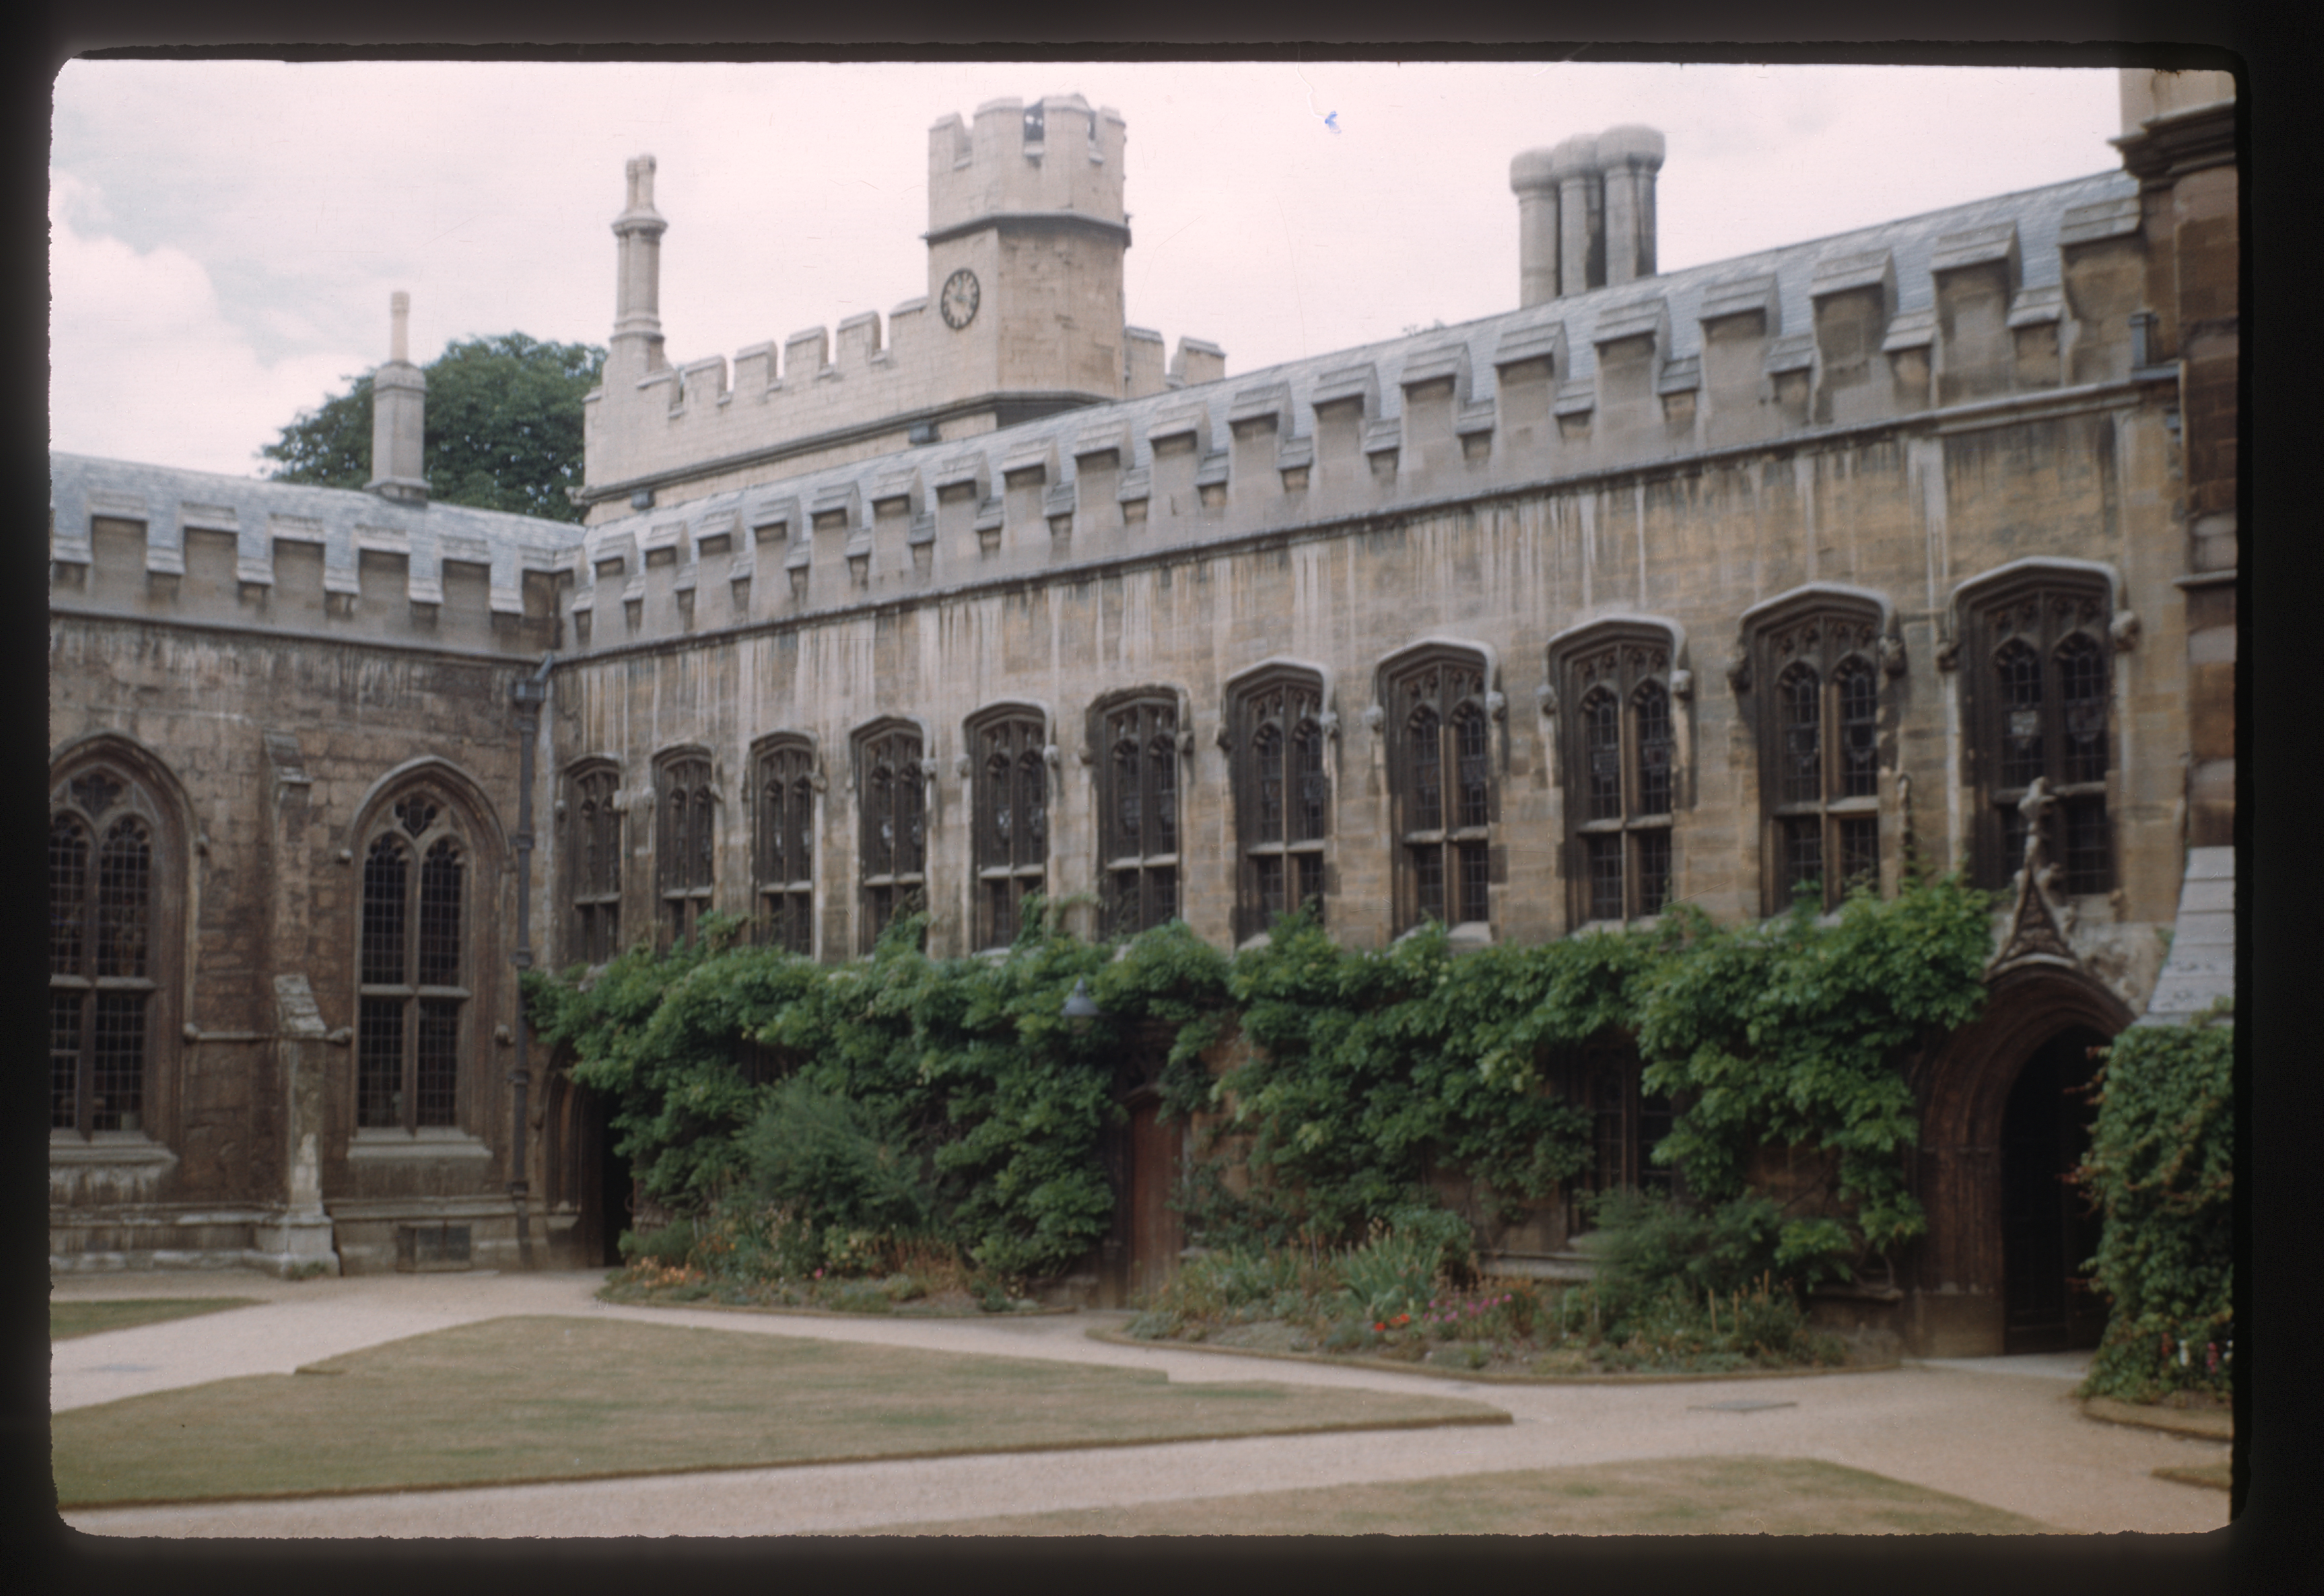 Photograph of the Balliol quad in Oxford